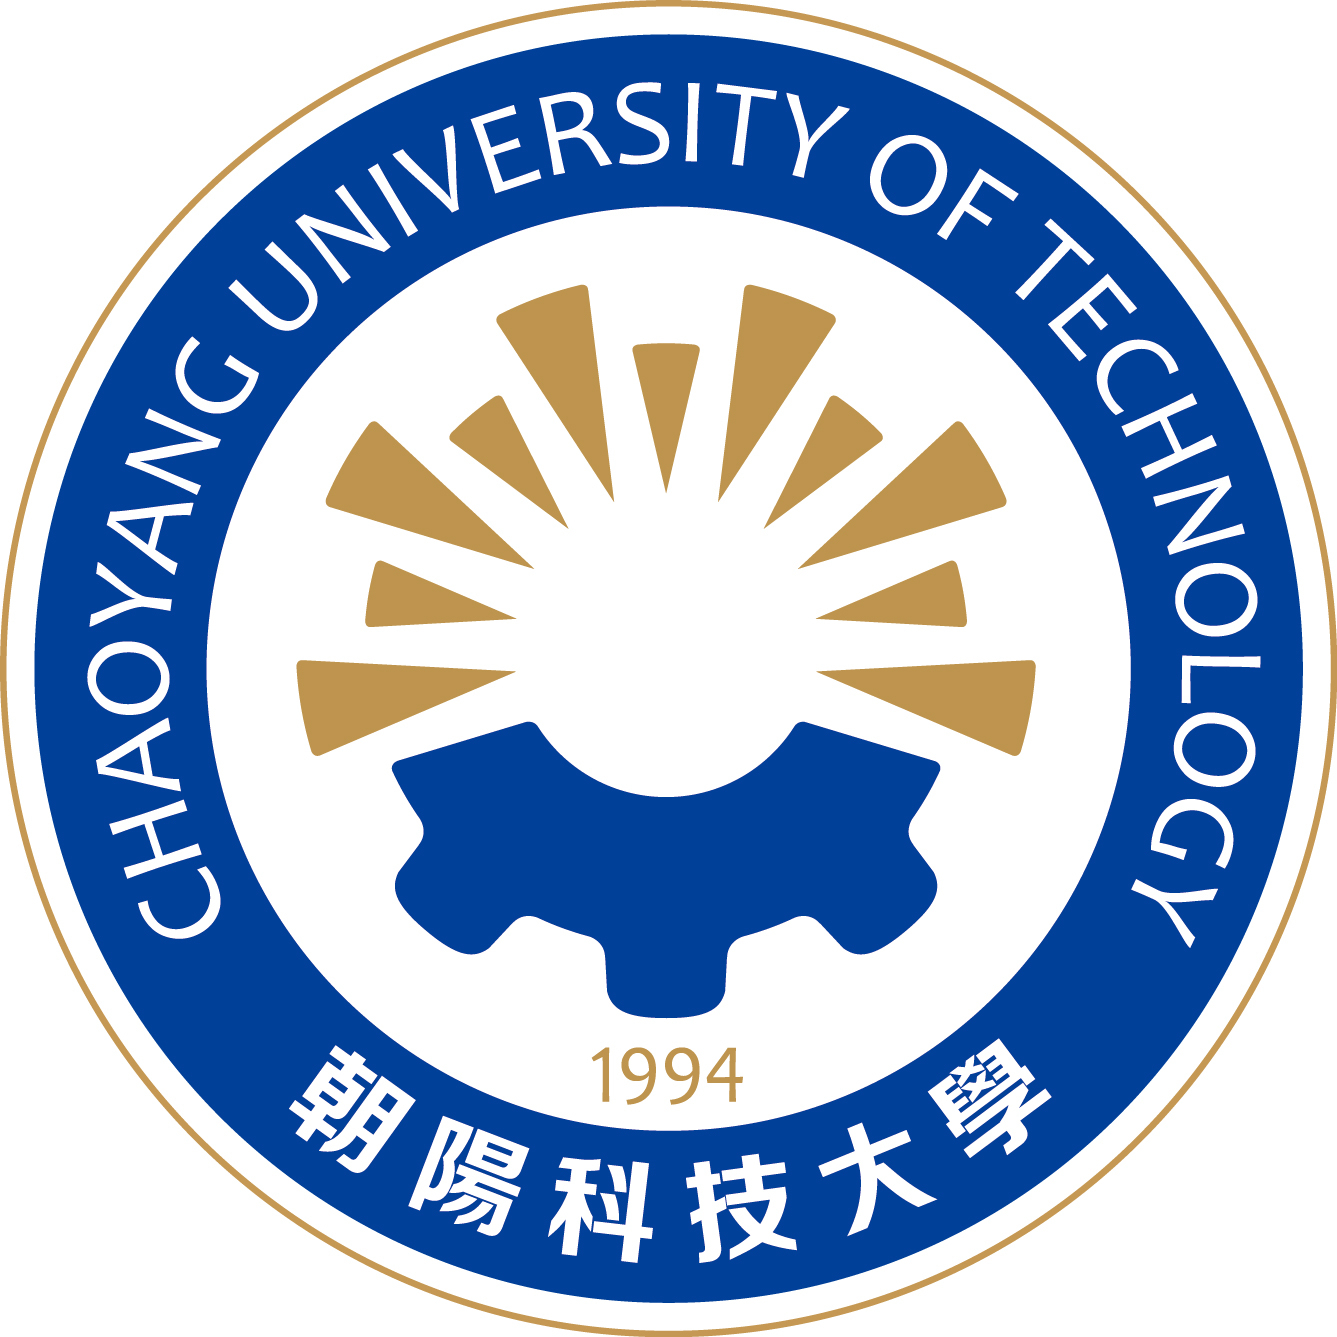 The University Motto and Emblem